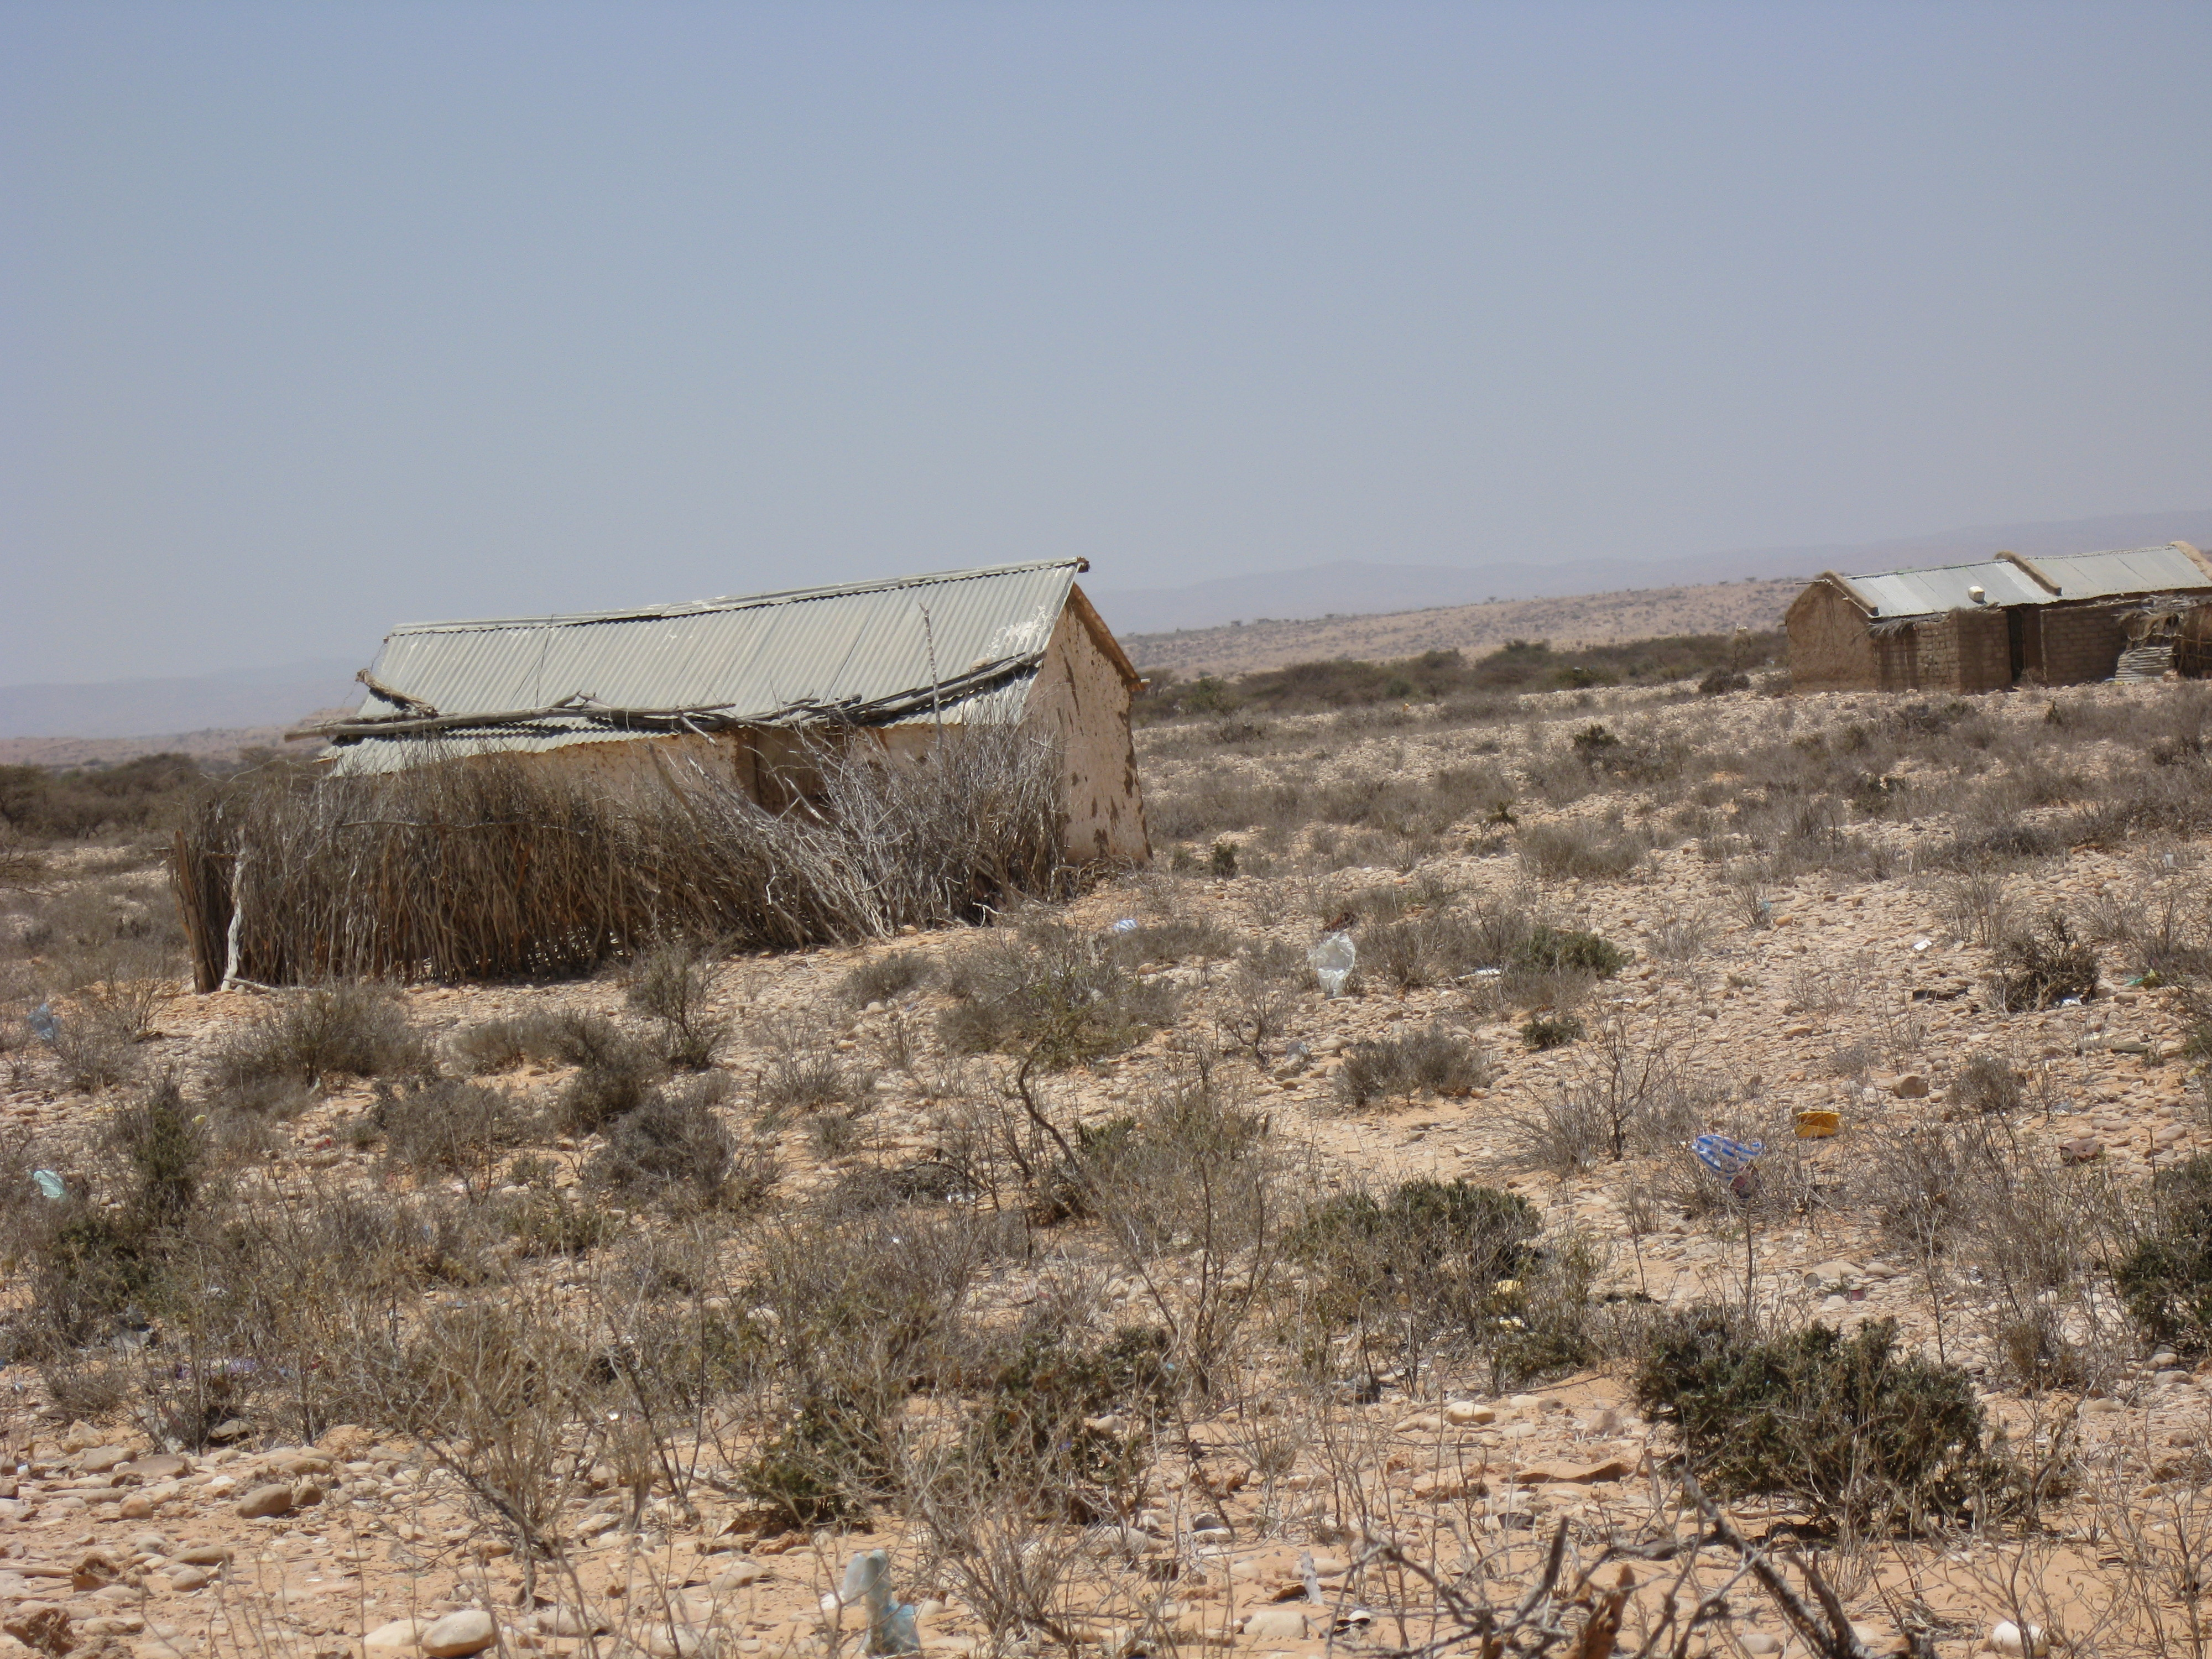 Abandoned houses due to drought in Hamure village, Somalia.